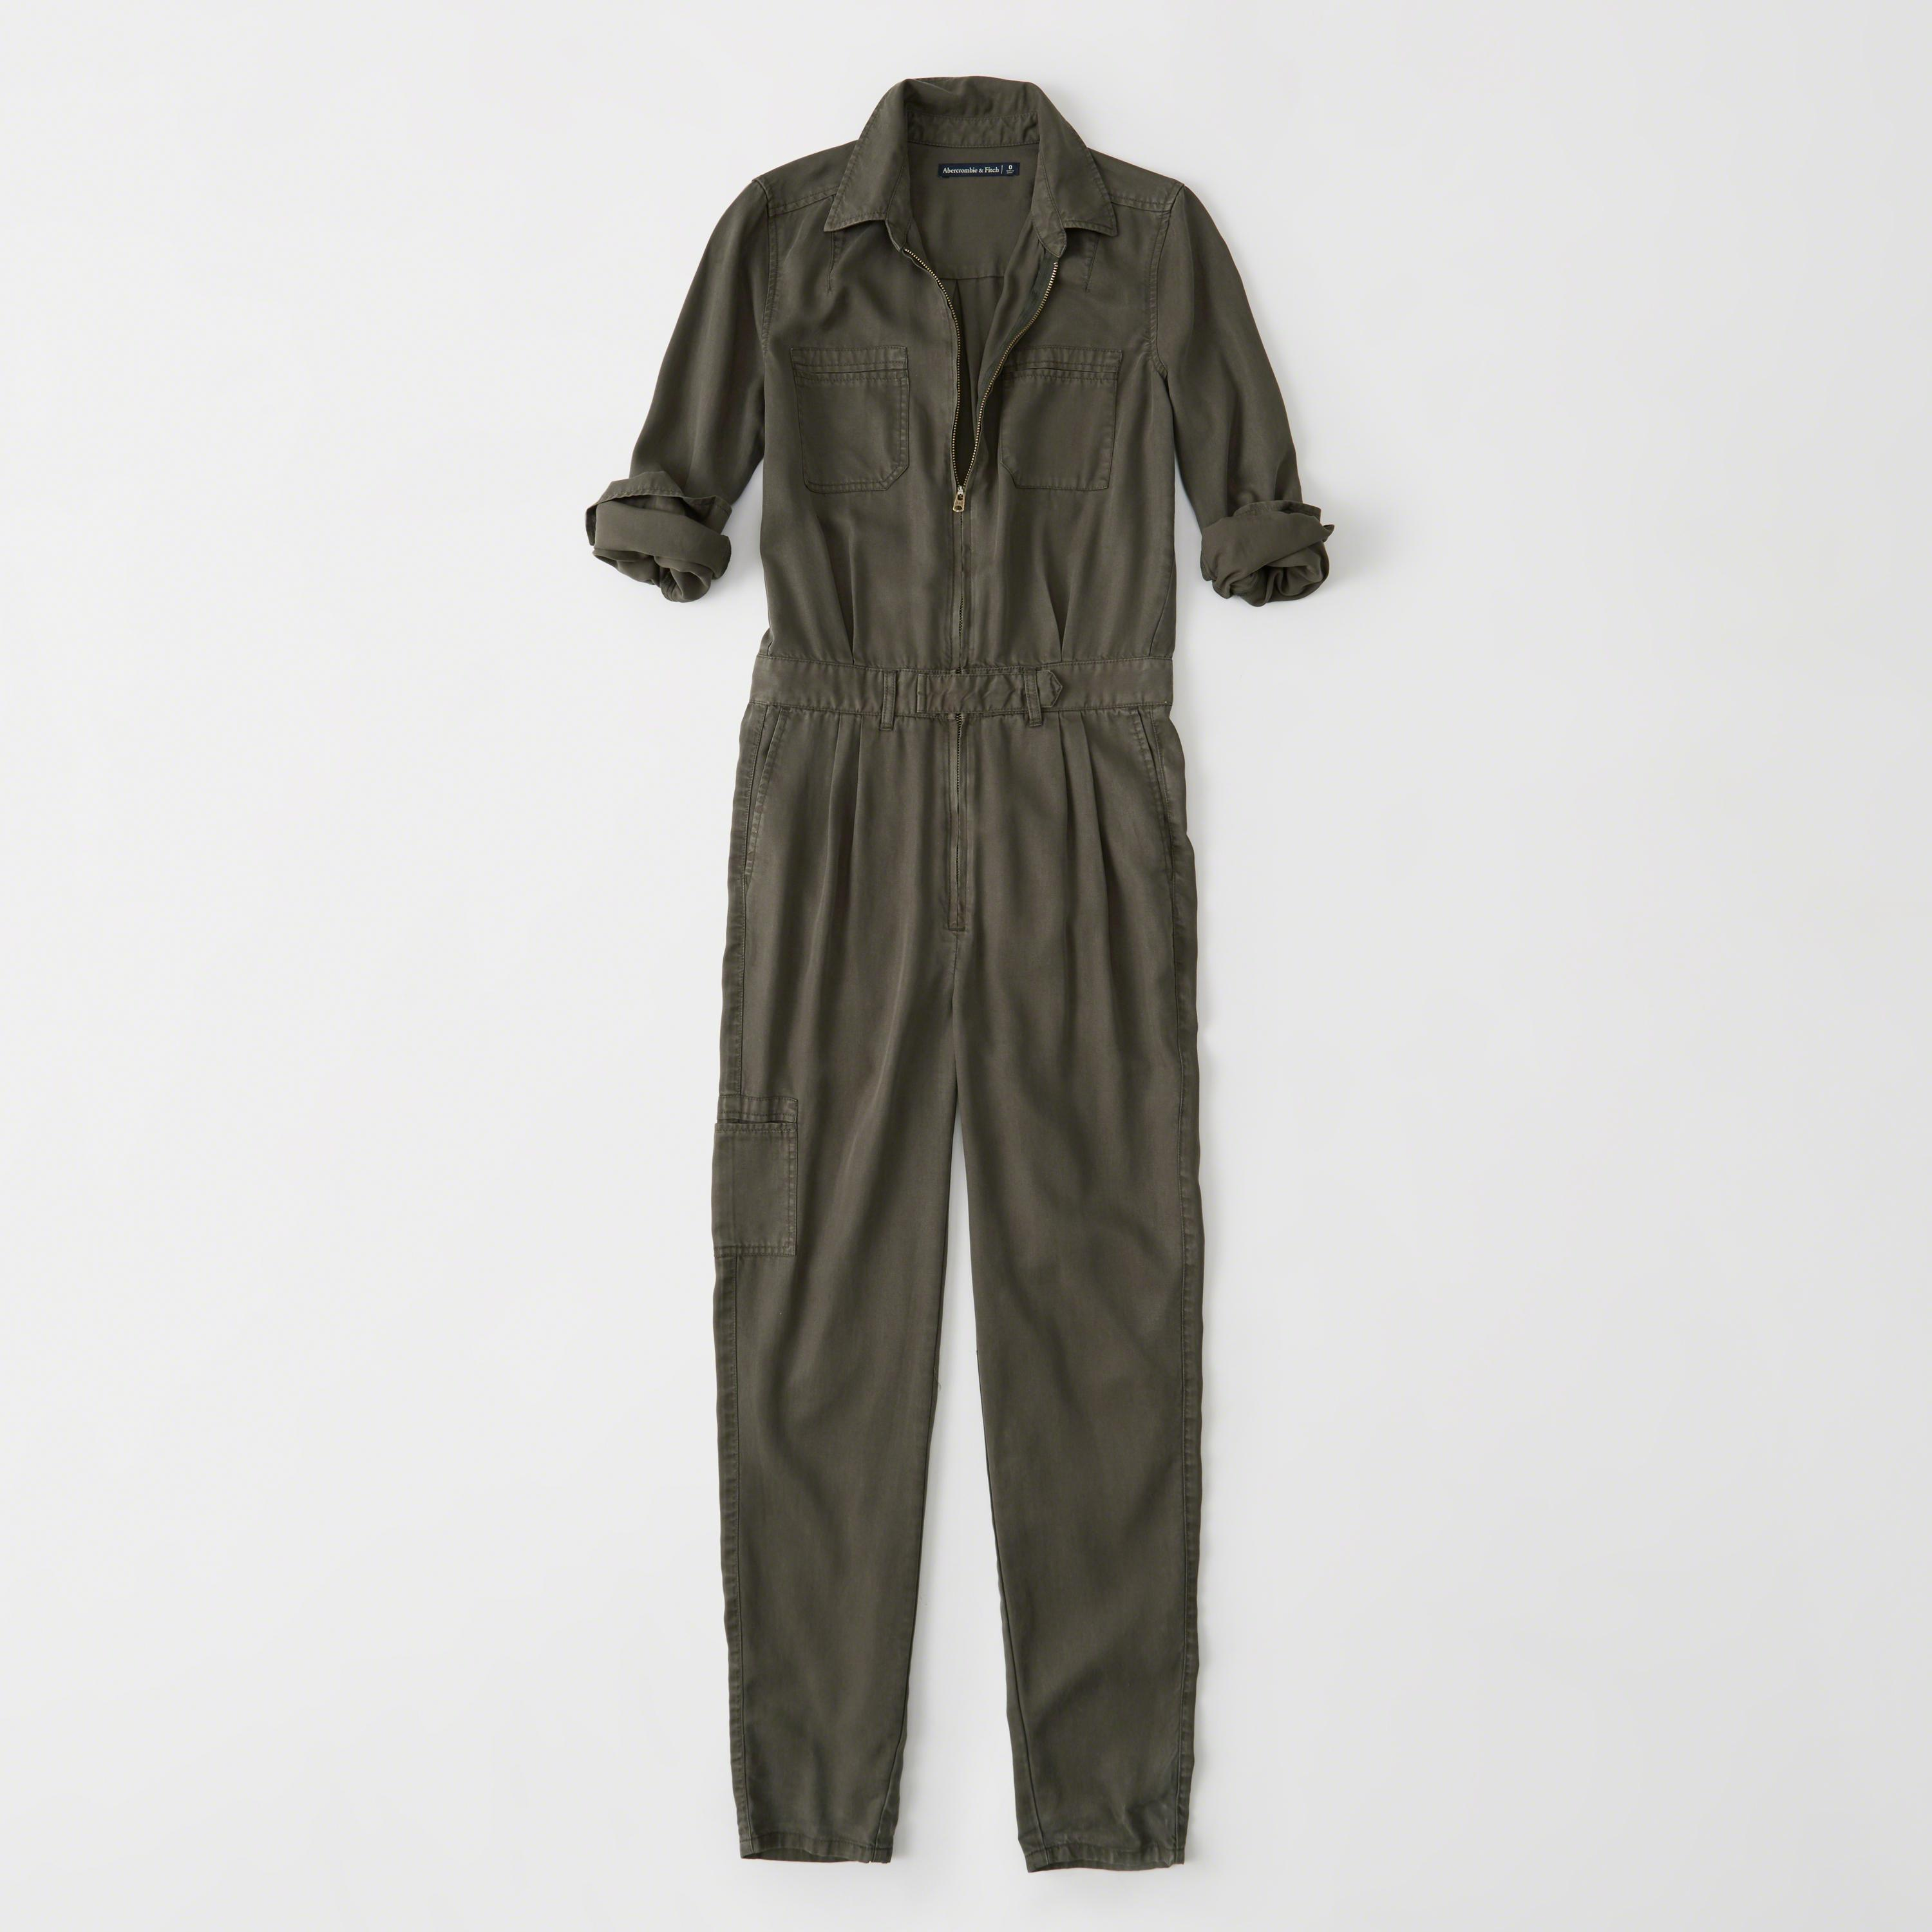 9d8cce3564b Abercrombie   Fitch Utility Jumpsuit in Green - Lyst